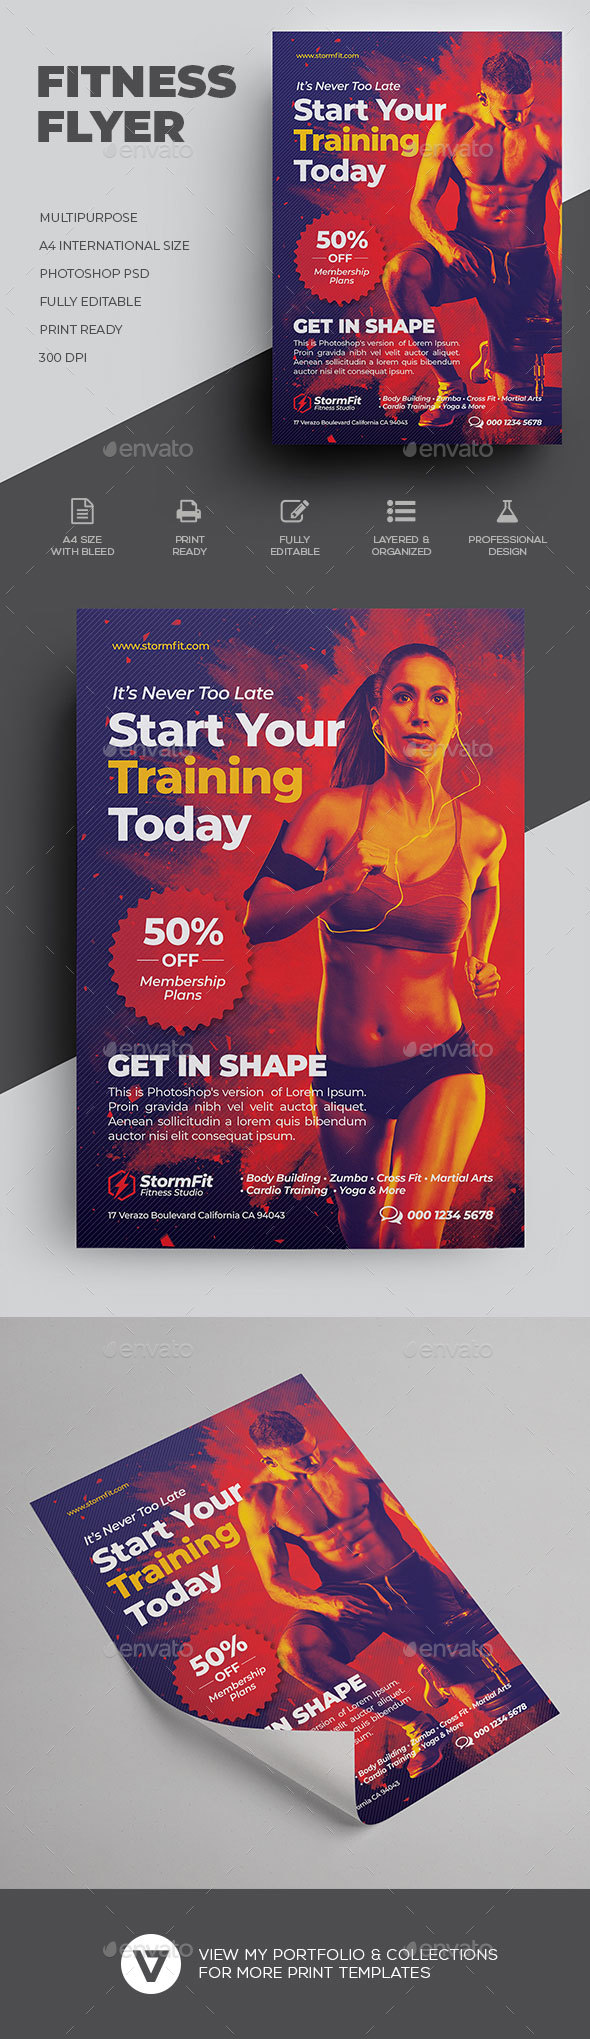 Fitness Flyer Template By Verazo Graphicriver